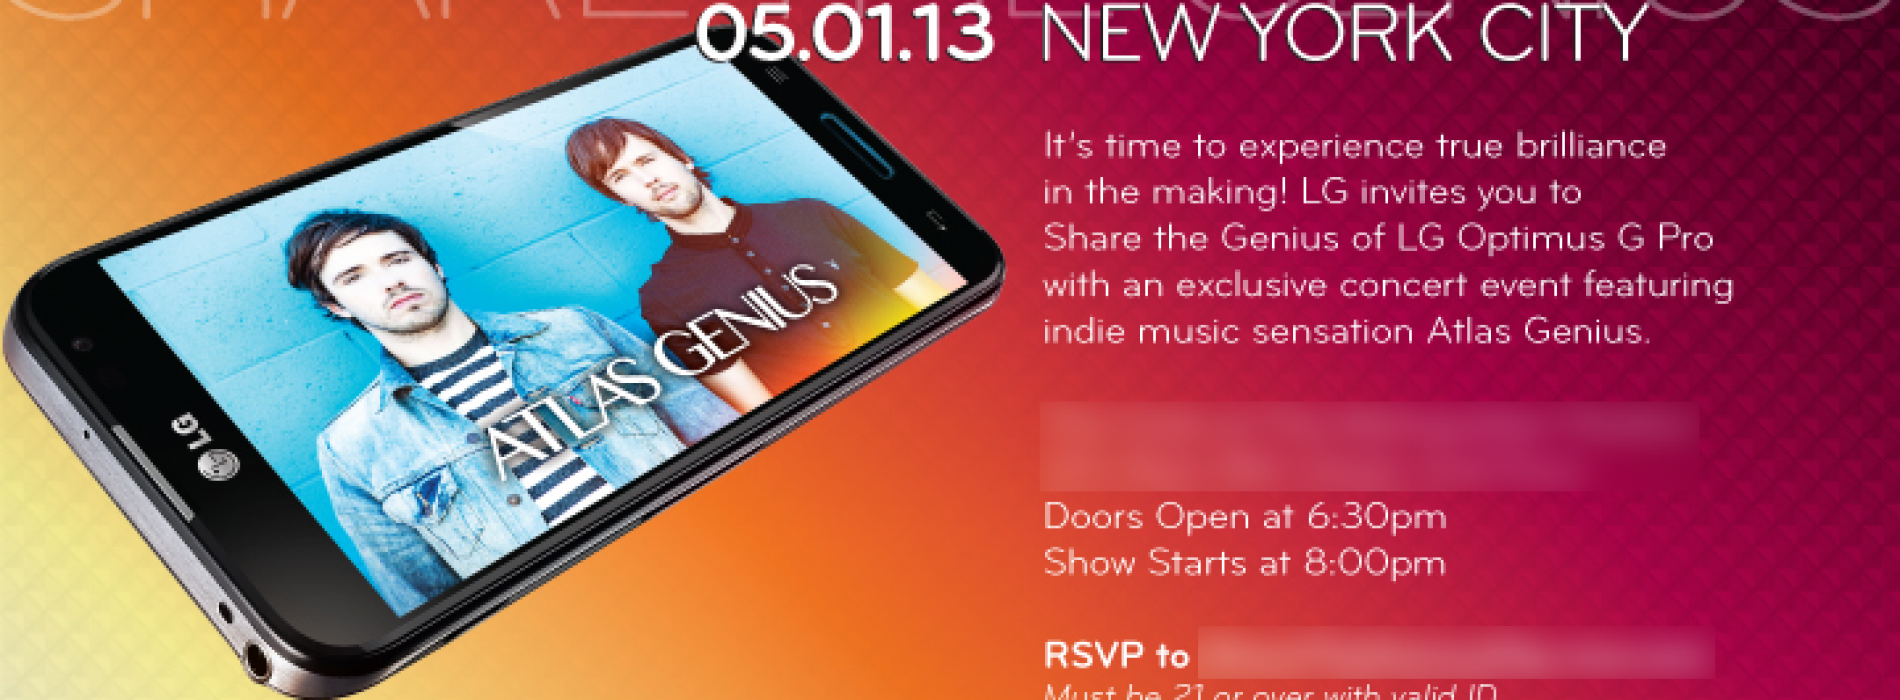 Update: LG May 1st press event to focus on Optimus G Pro